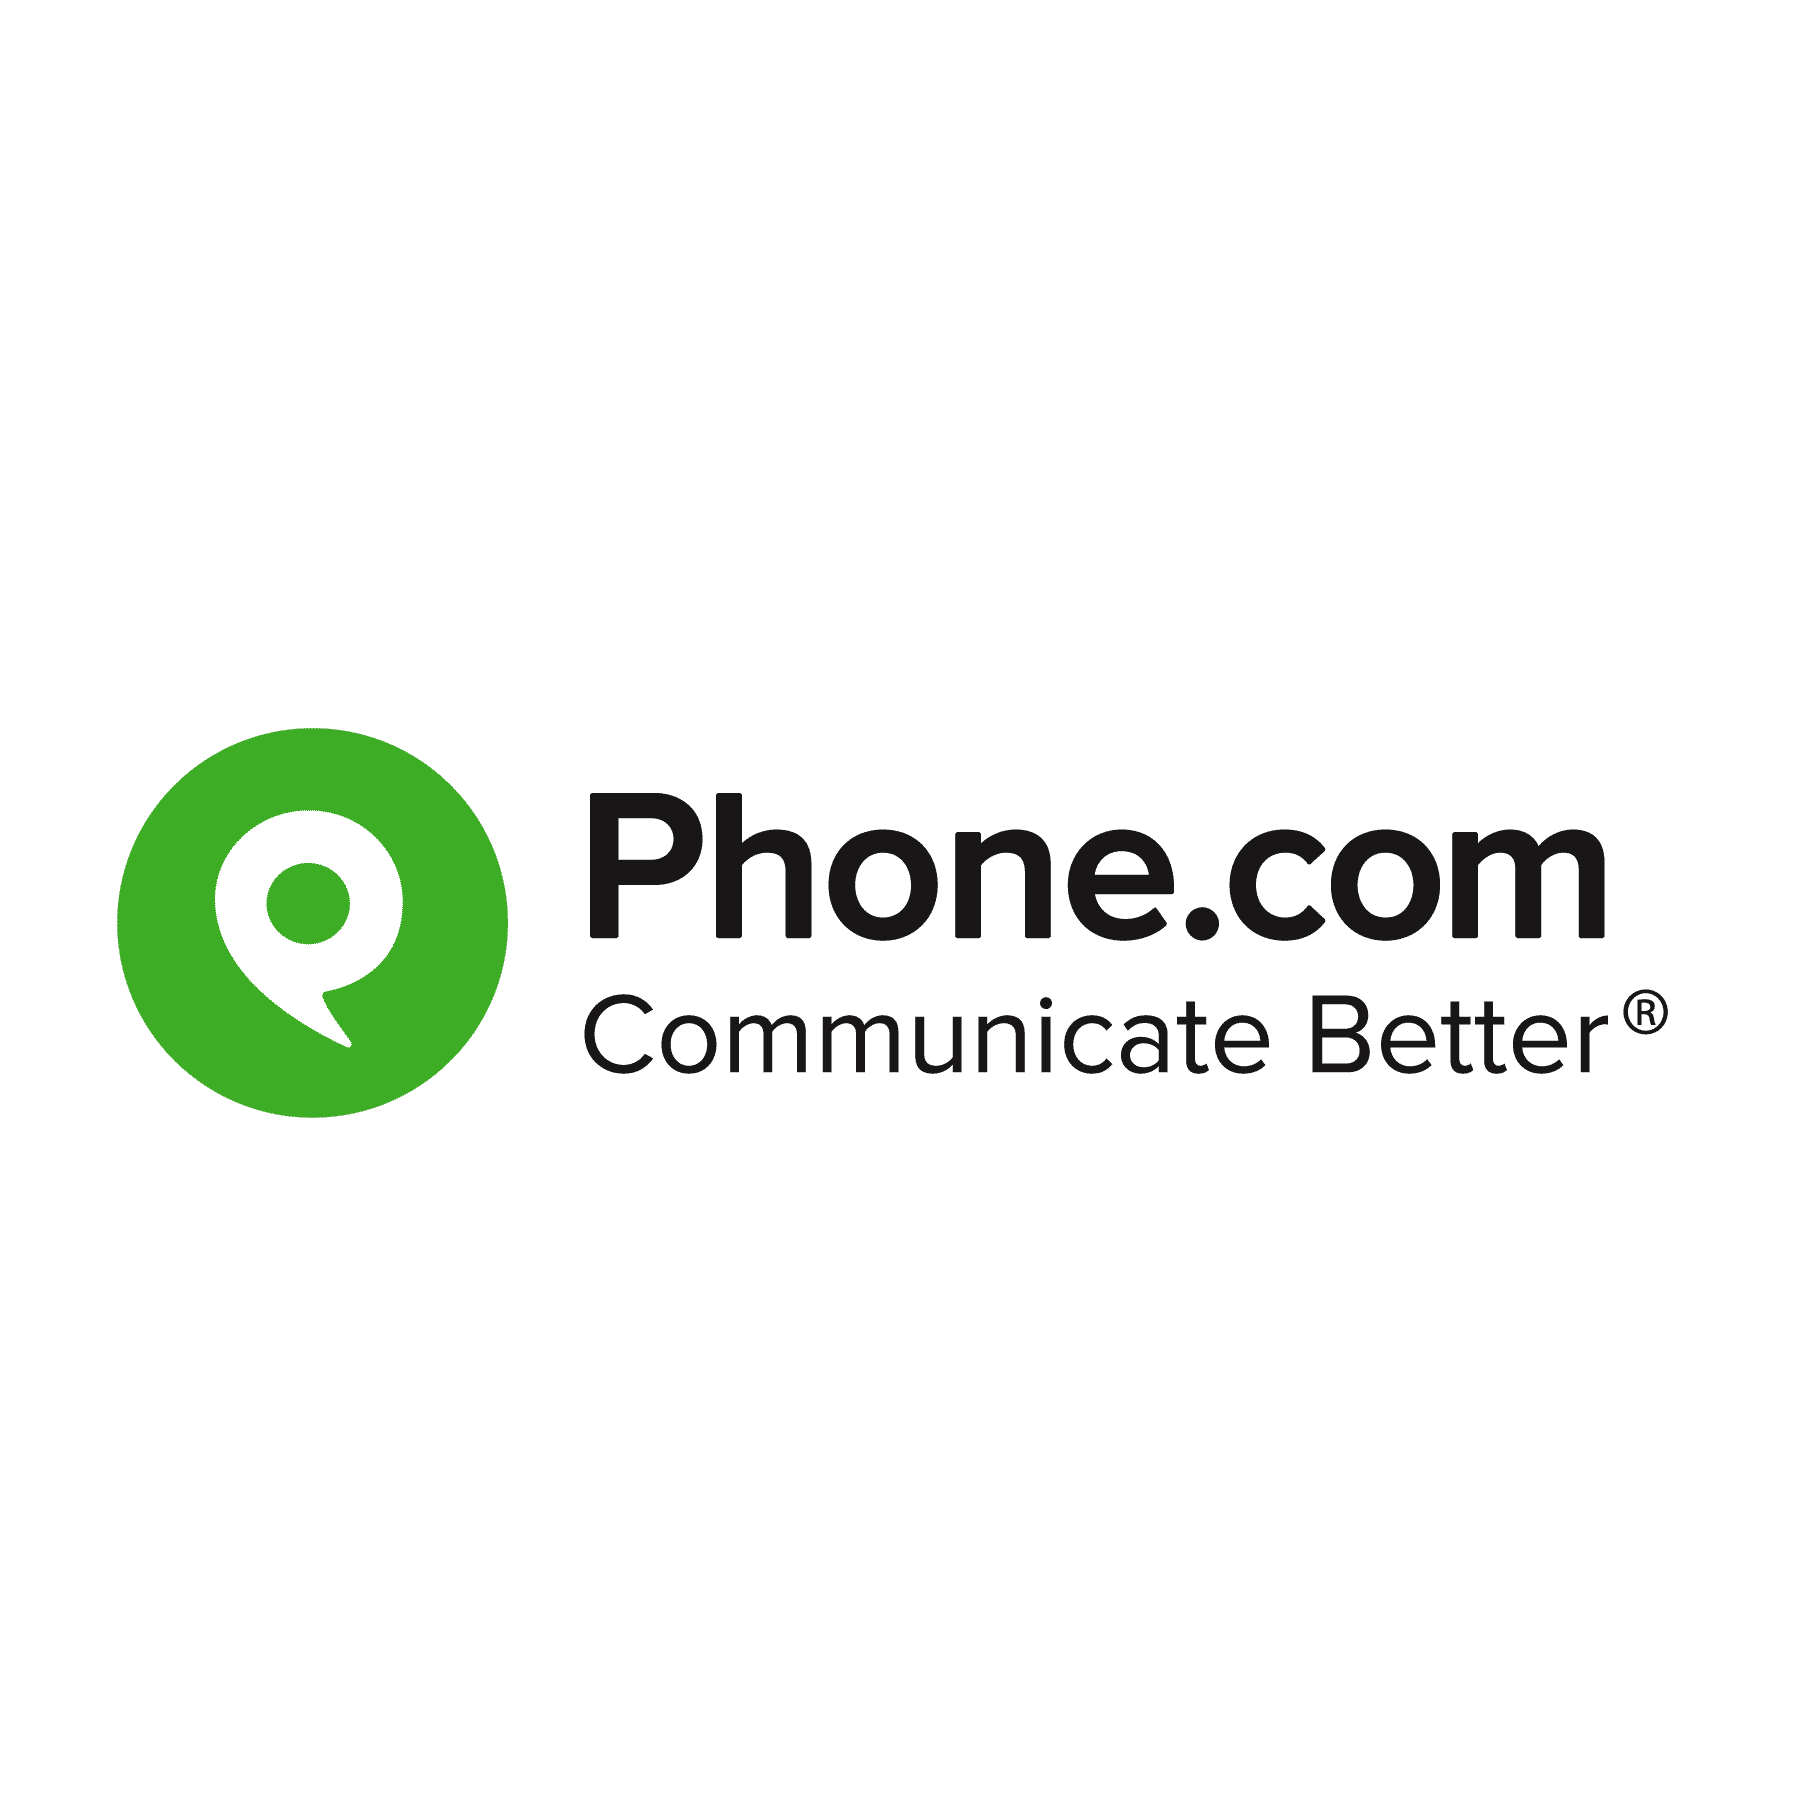 Get 20% off your Phone.com base service for 3 months! Features and 300 Included Minutes. Customize Your Service After Signup.